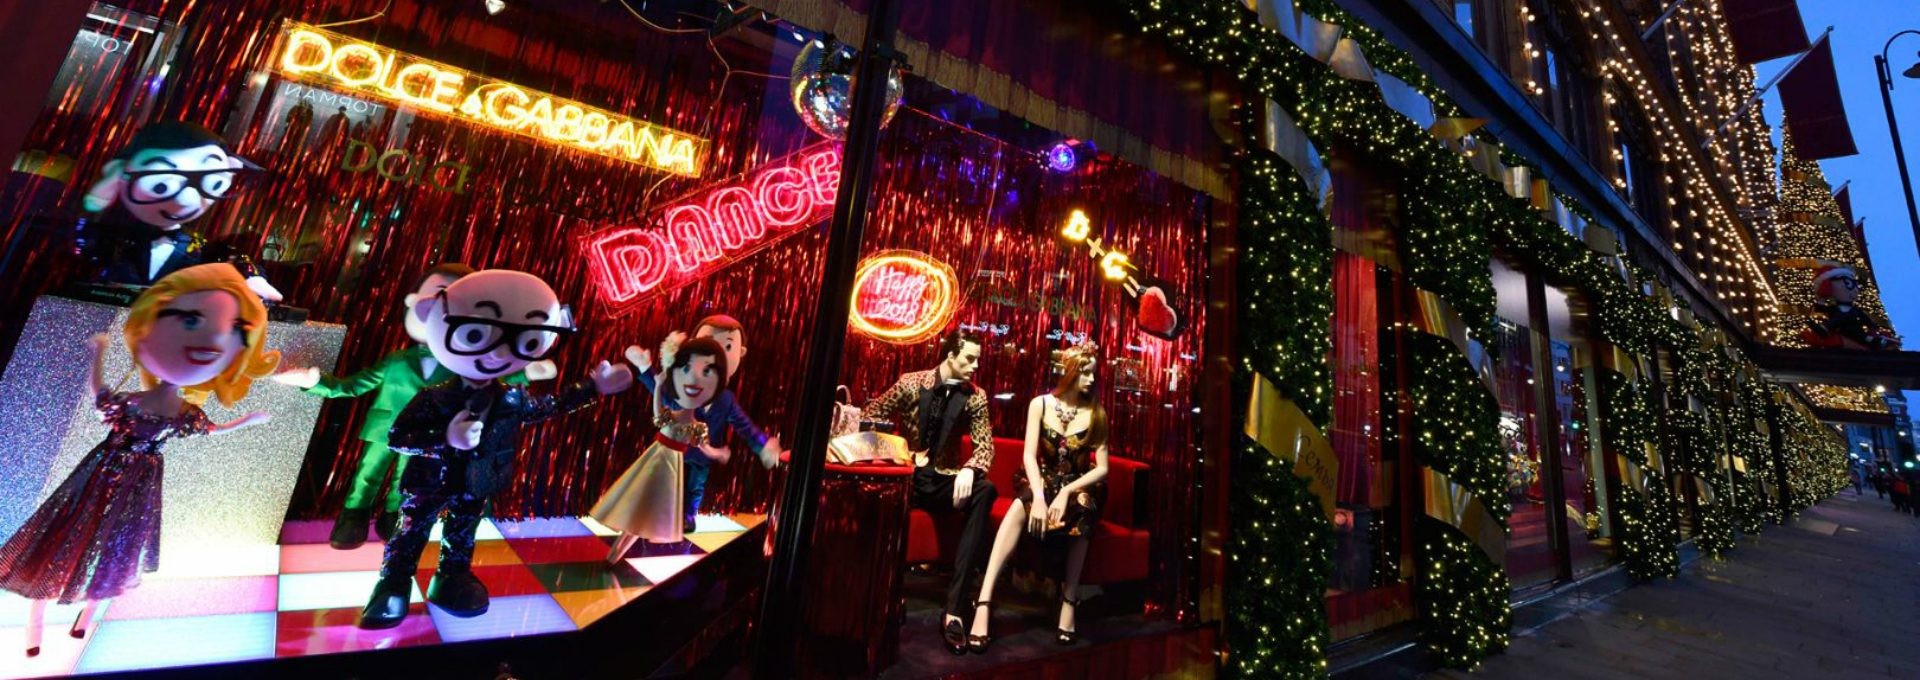 Dolce & Gabbana Takes Over Harrods Christmas Windows for 2017 - Christmas Windows 2017 - Christmas Window Displays ➤ Discover the season's newest design news and inspiration ideas. Visit Design Museum and subscribe our newsletter! #designmuseum #designevents #designnews #DolceGabbana #ChristmasWindows #ChristmasDecorations